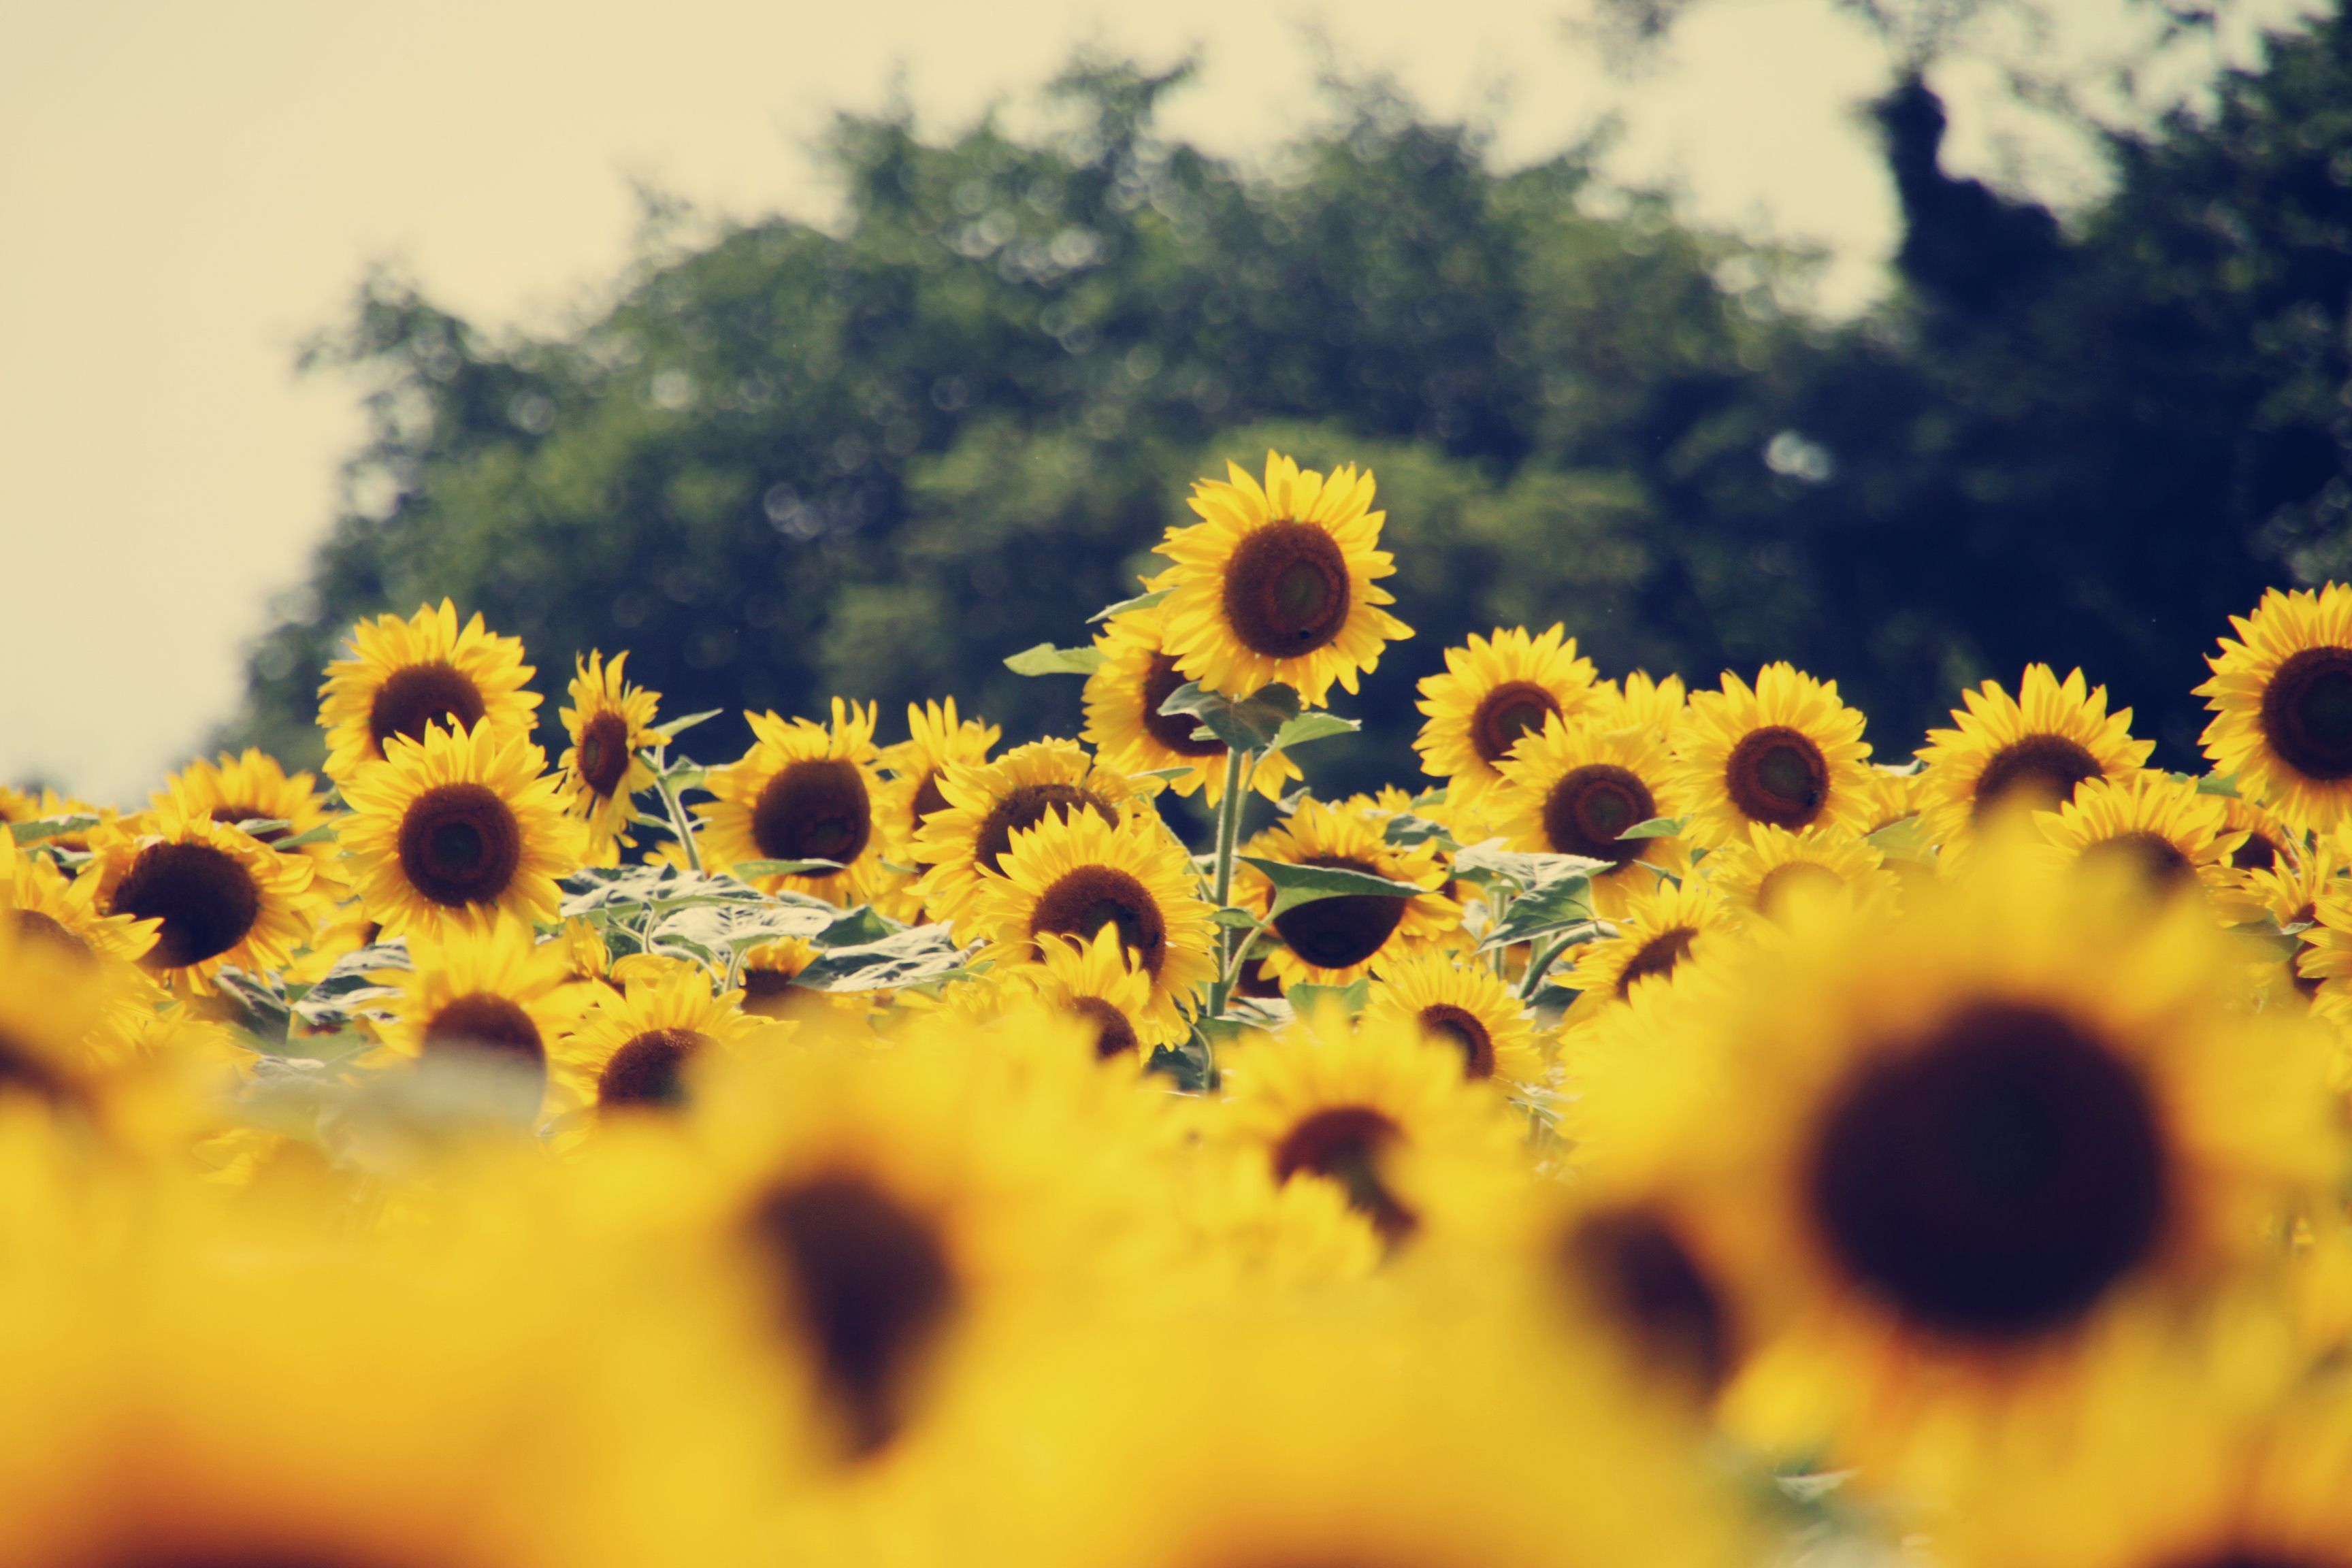 Sunflower Tumblr Wallpaper Photo With High Definition Wallpaper 3456x2304 Px 510 38 Kb Sunflower Wallpaper Sunflowers Background Sunflower Images